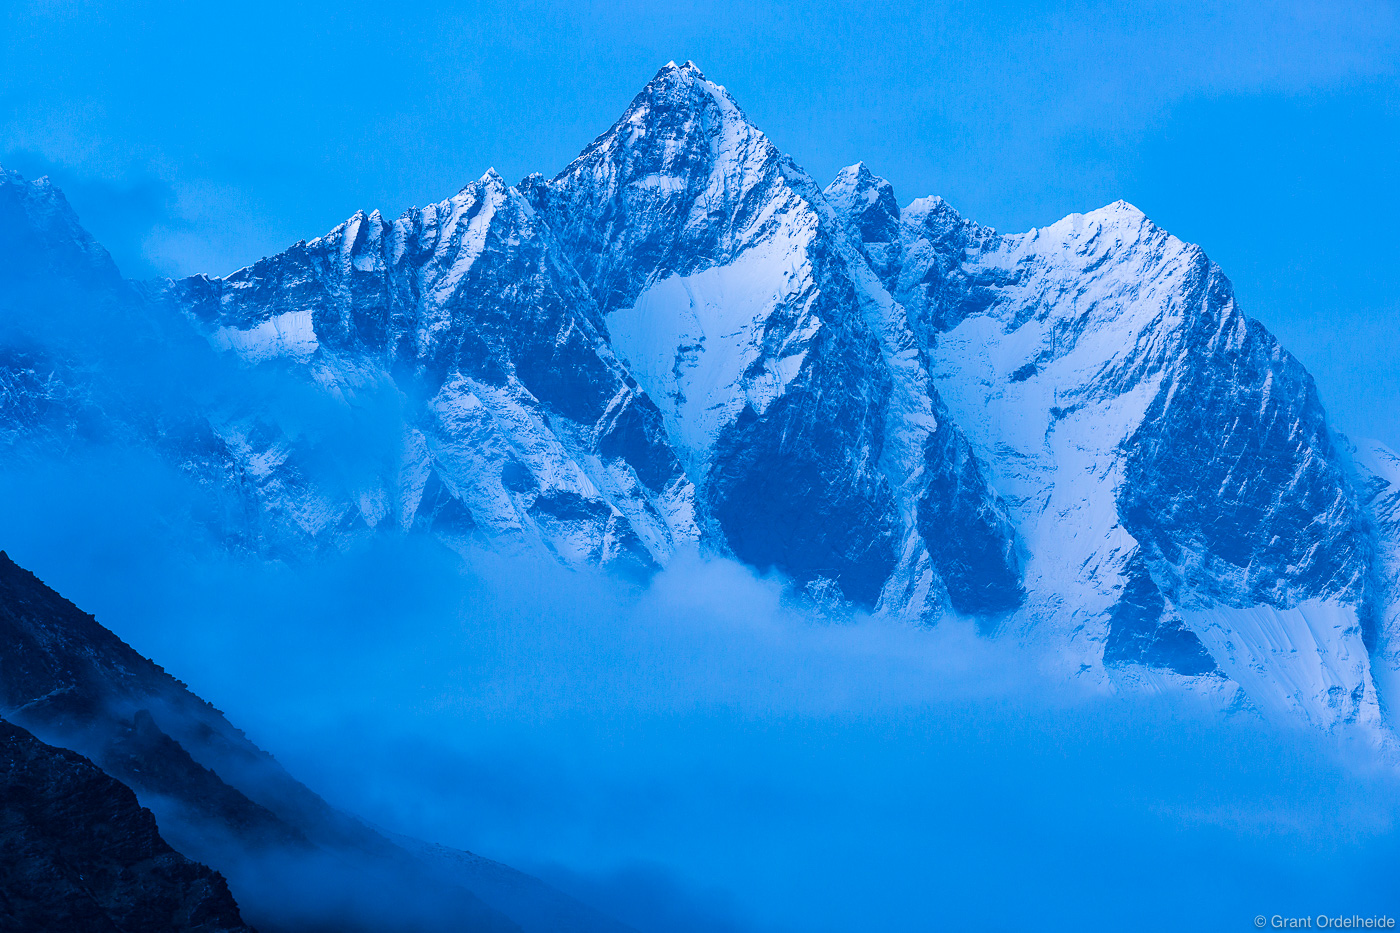 Lhoste (27,940'), the fourth highest mountain in the world as seen from the village of Dingboche.